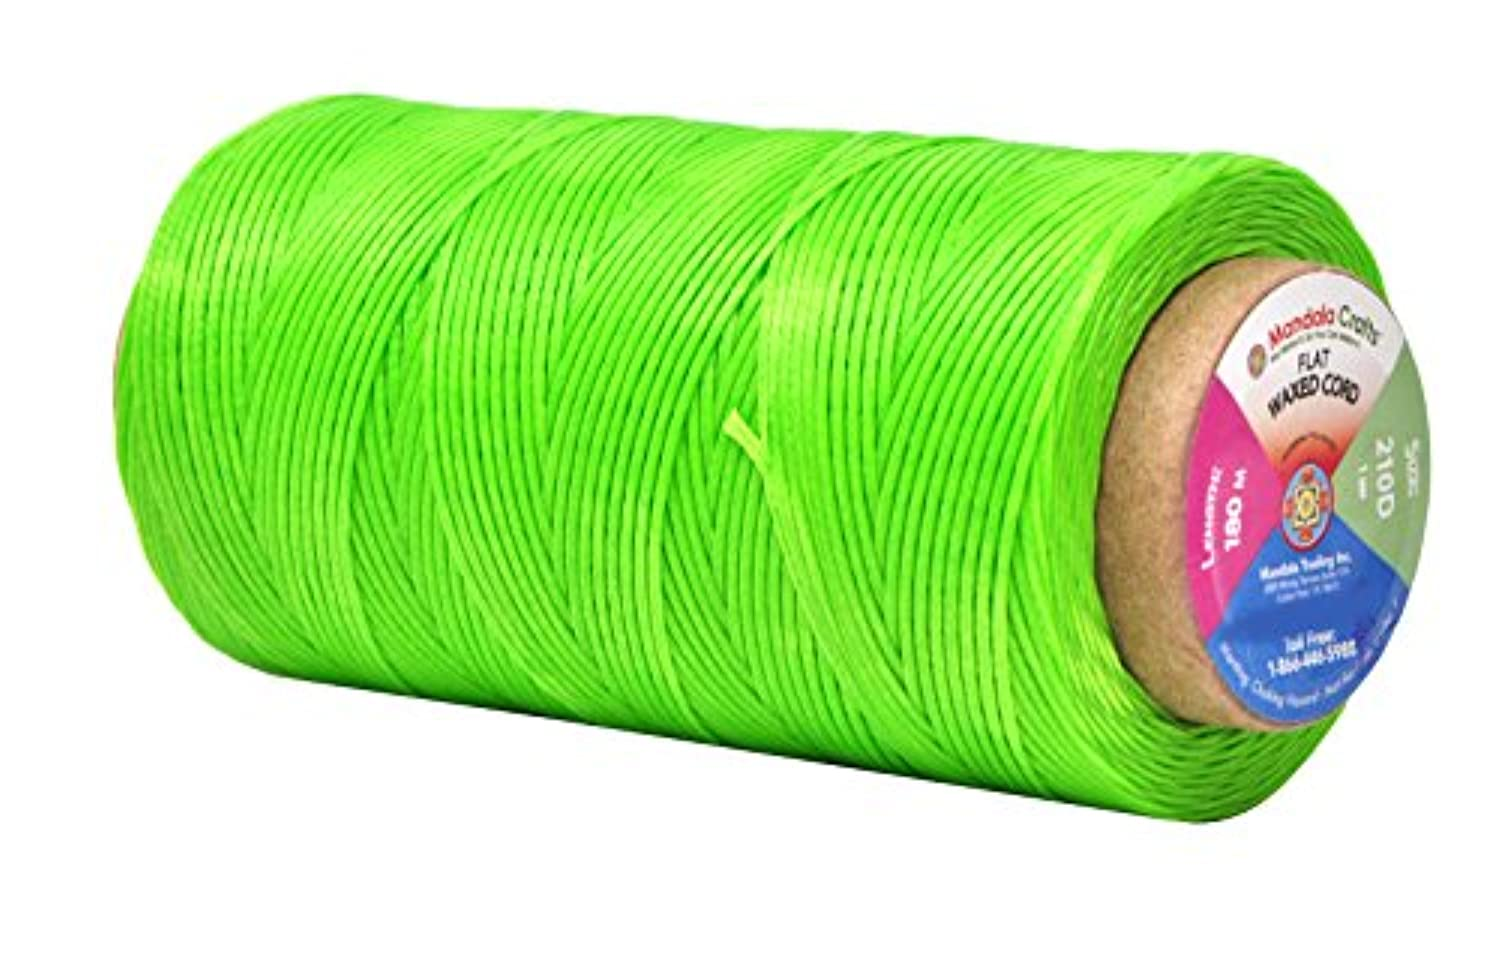 Mandala Crafts 150D 210D 0.8mm 1mm Leather Sewing Stitching Flat Waxed Thread String Cord (210D 1mm 180M, Lime Green)